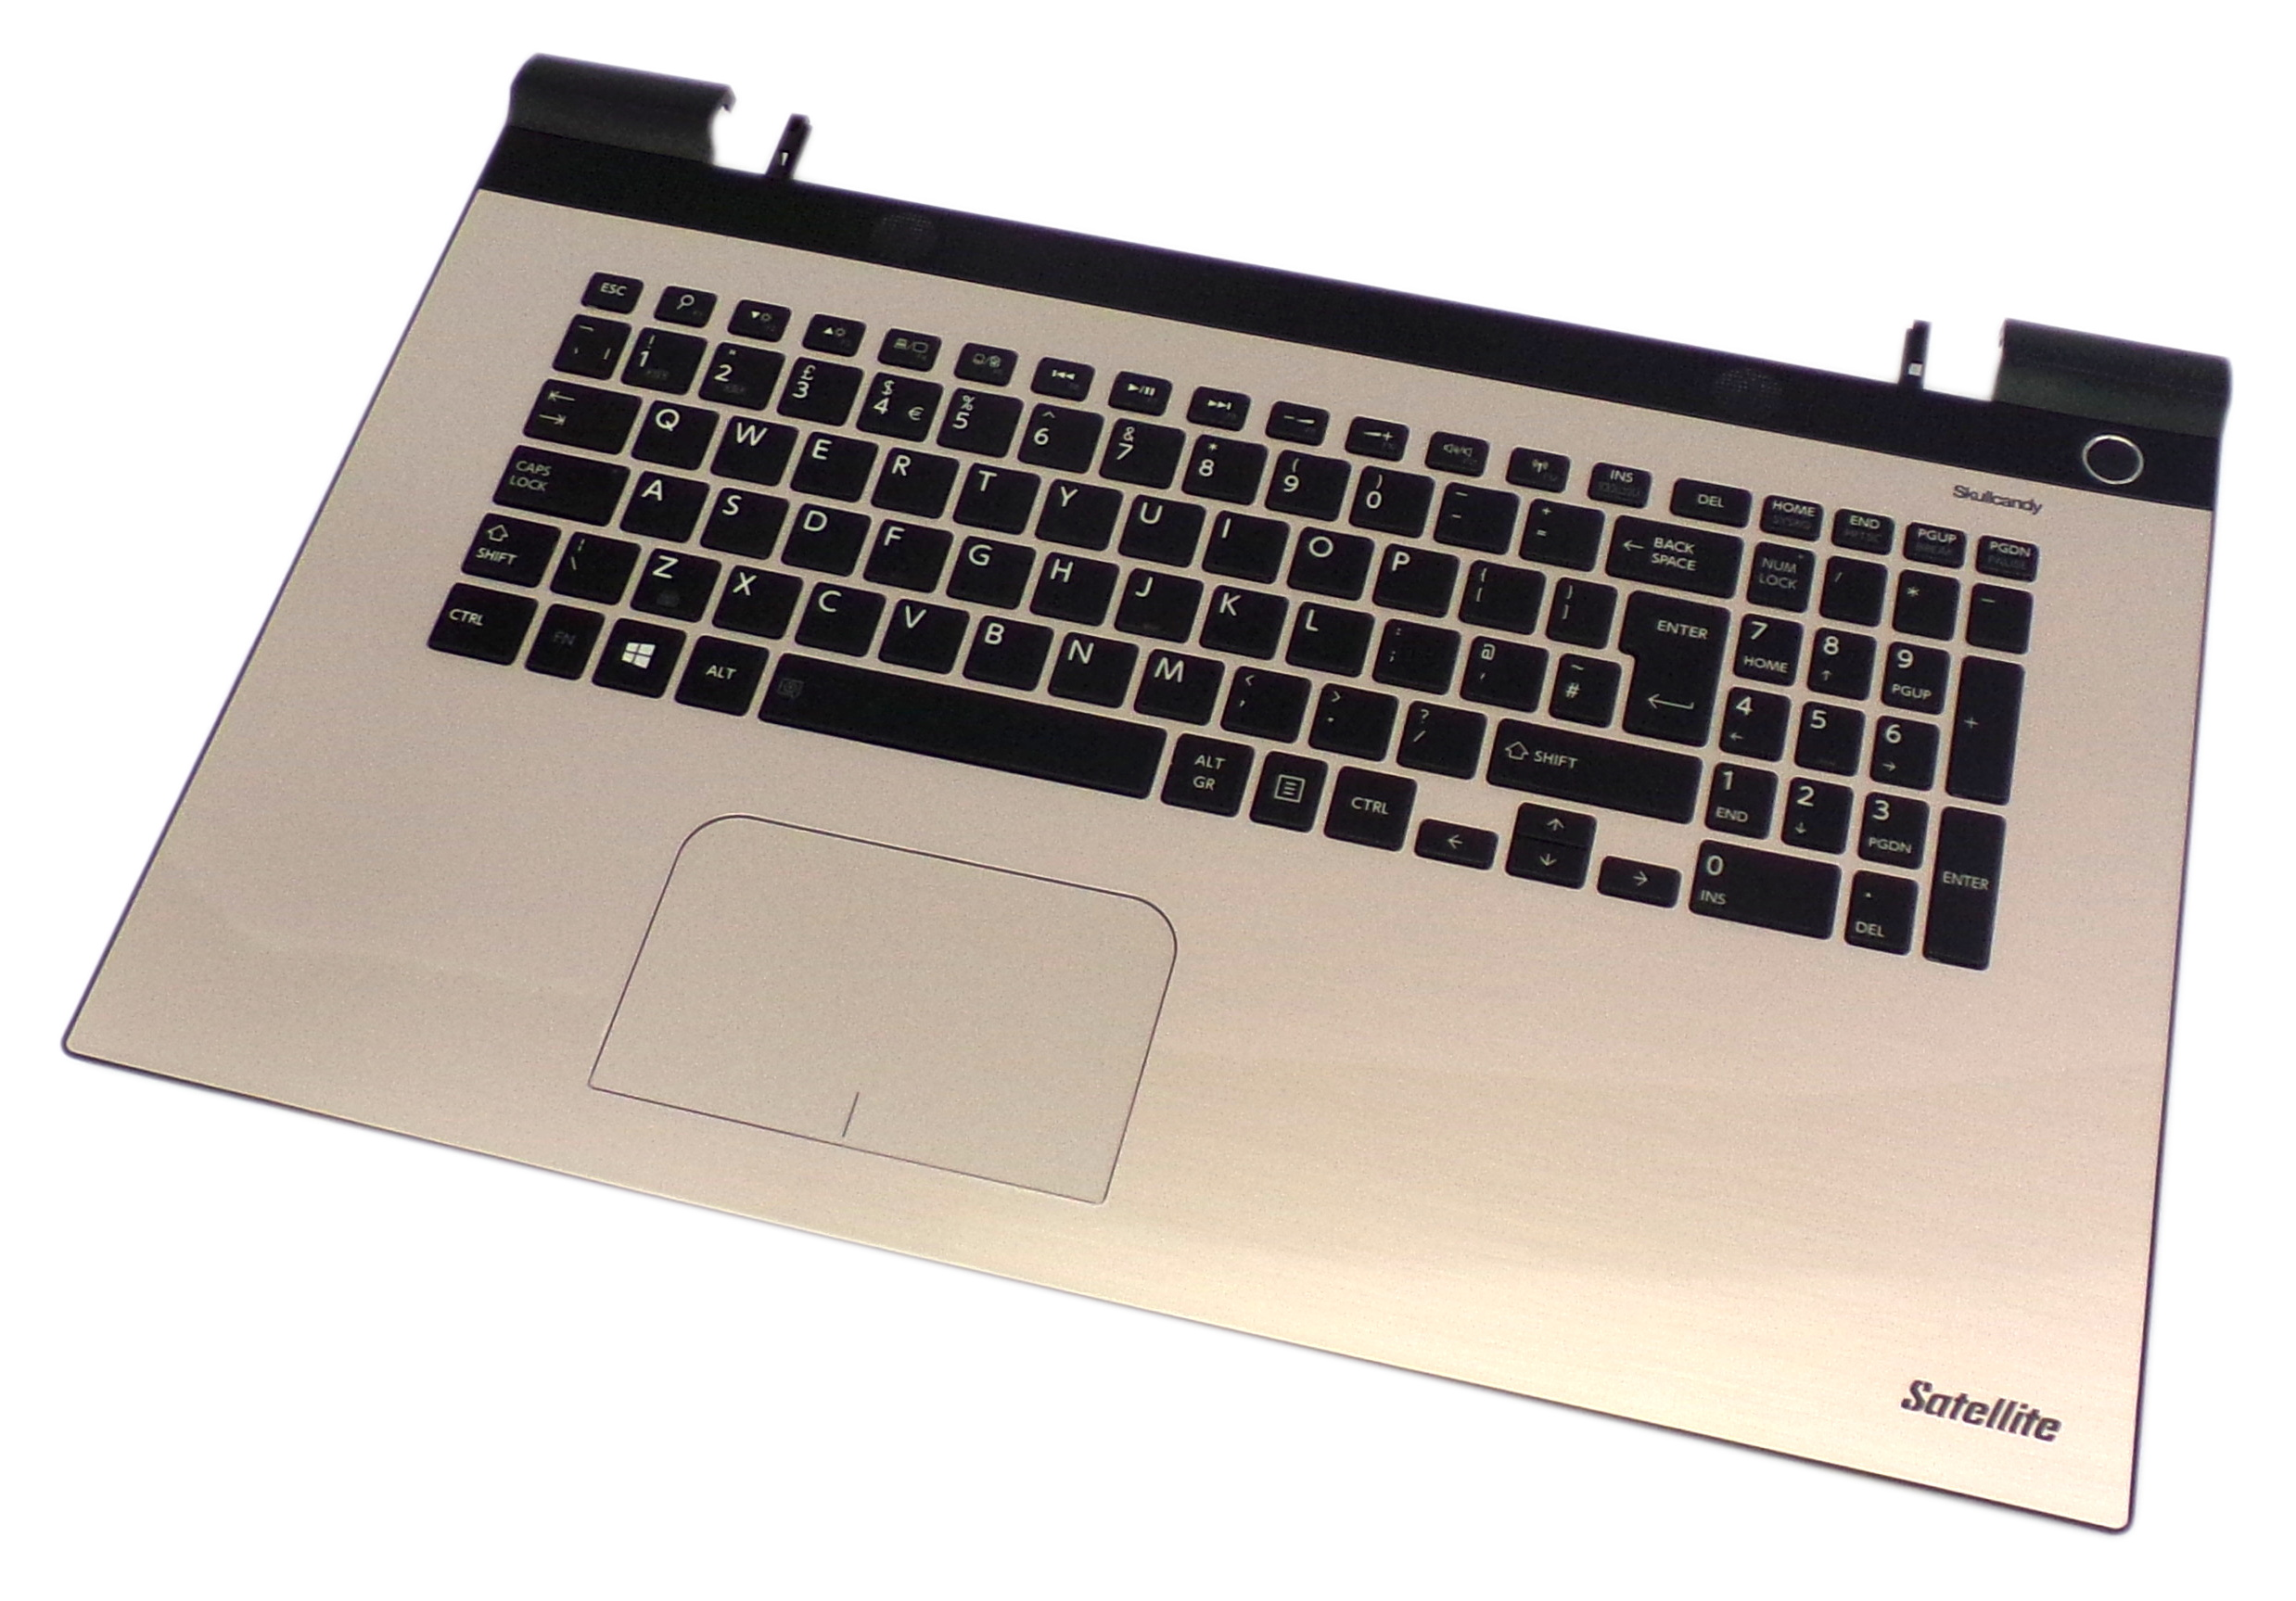 H000081870 Toshiba Satellite L75-C7250 Keyboard Touchpad Palmrest Gold Assembly